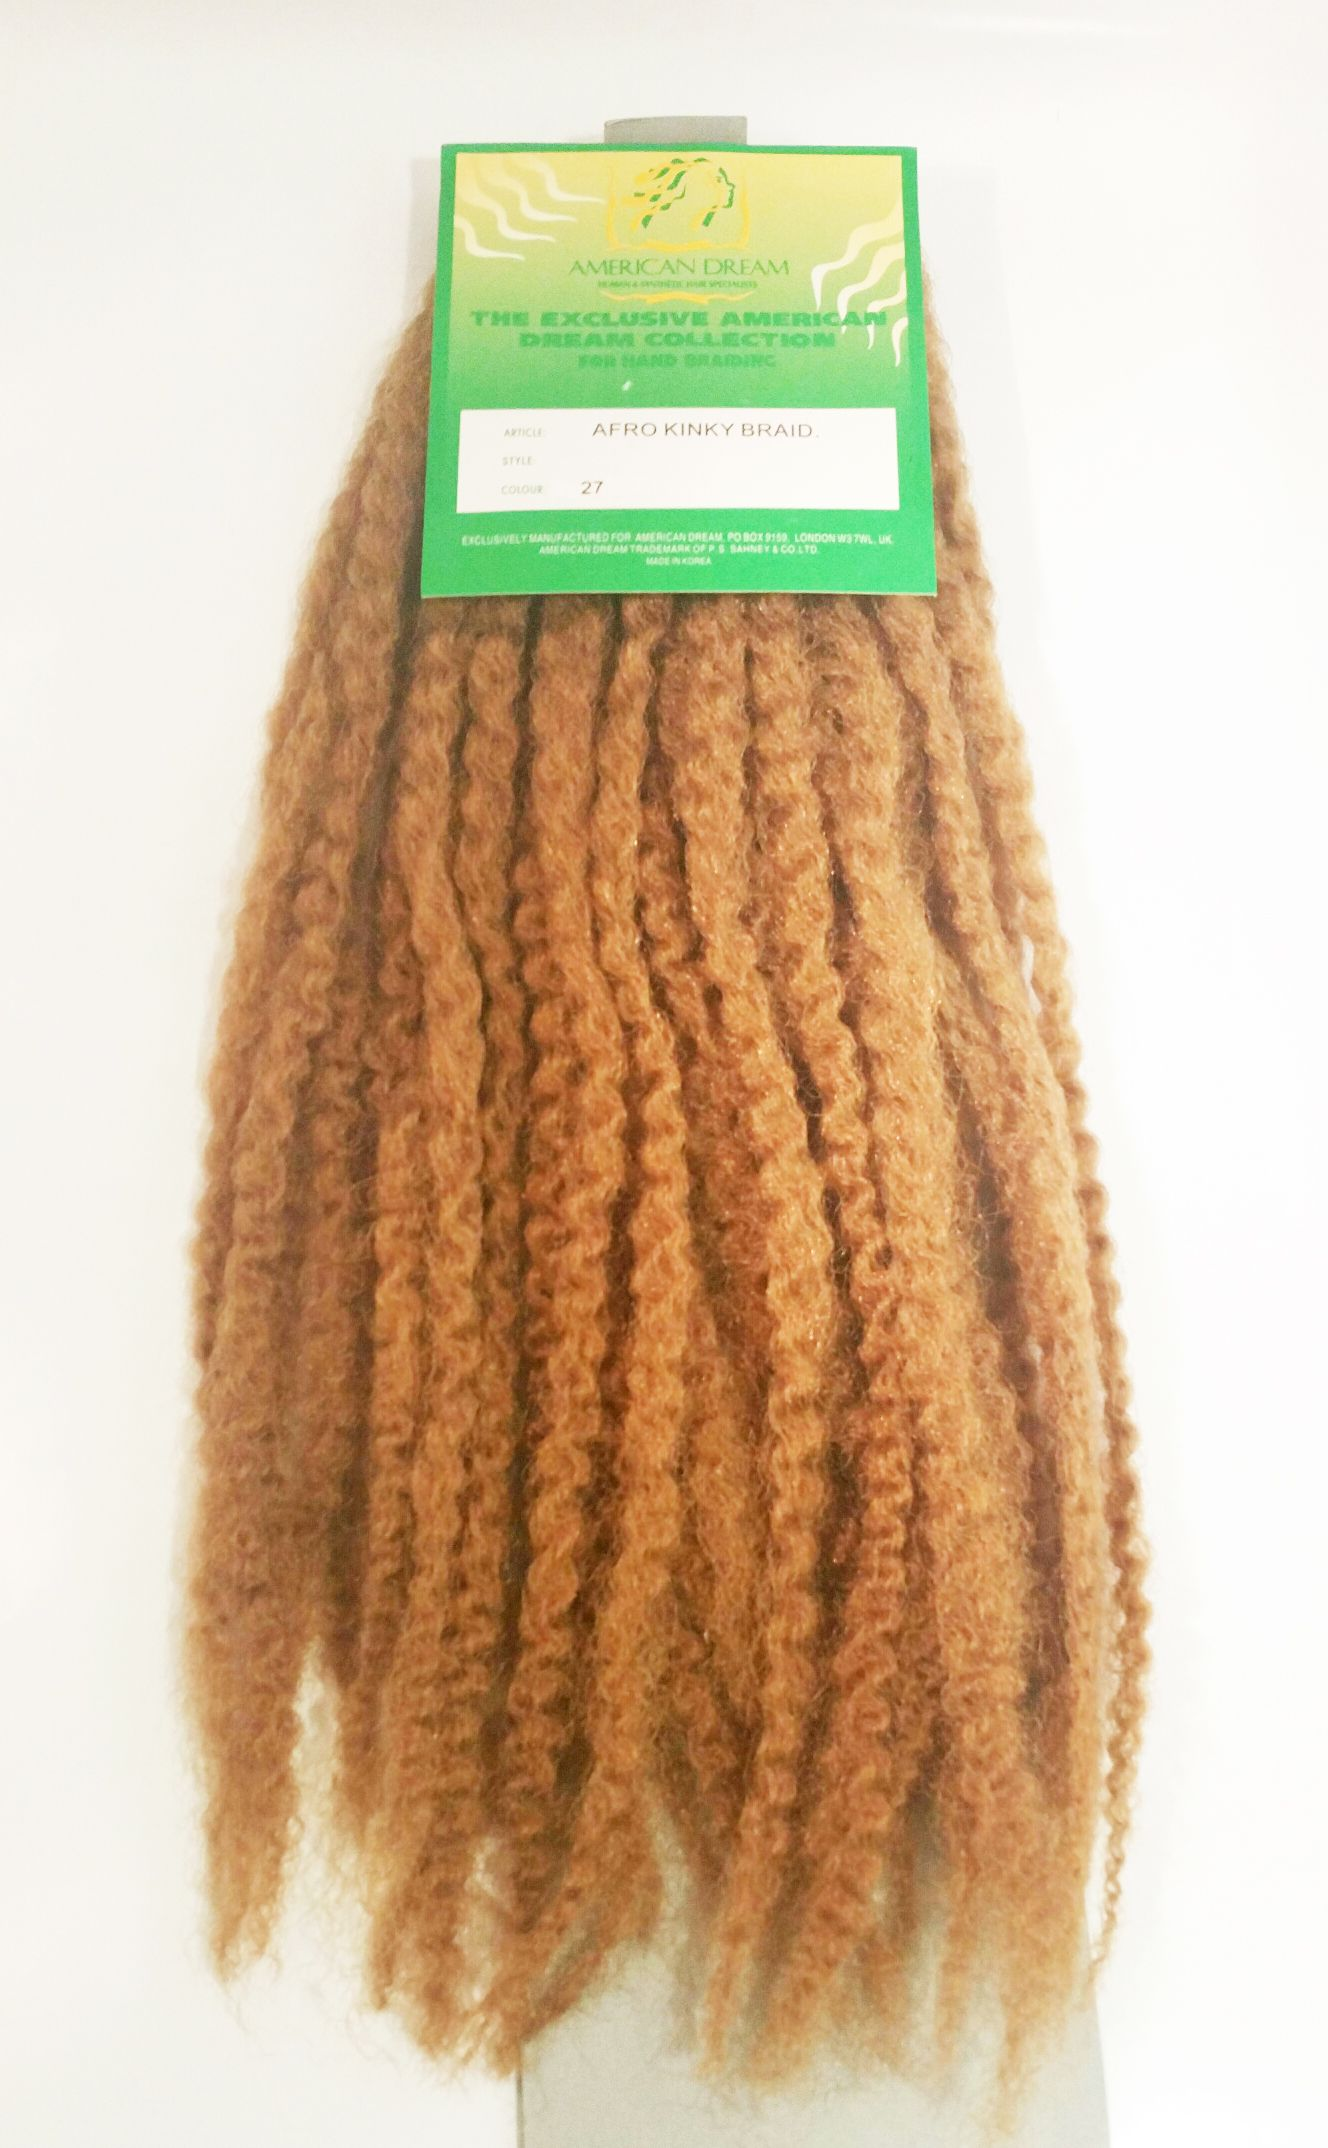 Afro Kinky Braid Colour 27 2 Packs Love Afro Cosmetics